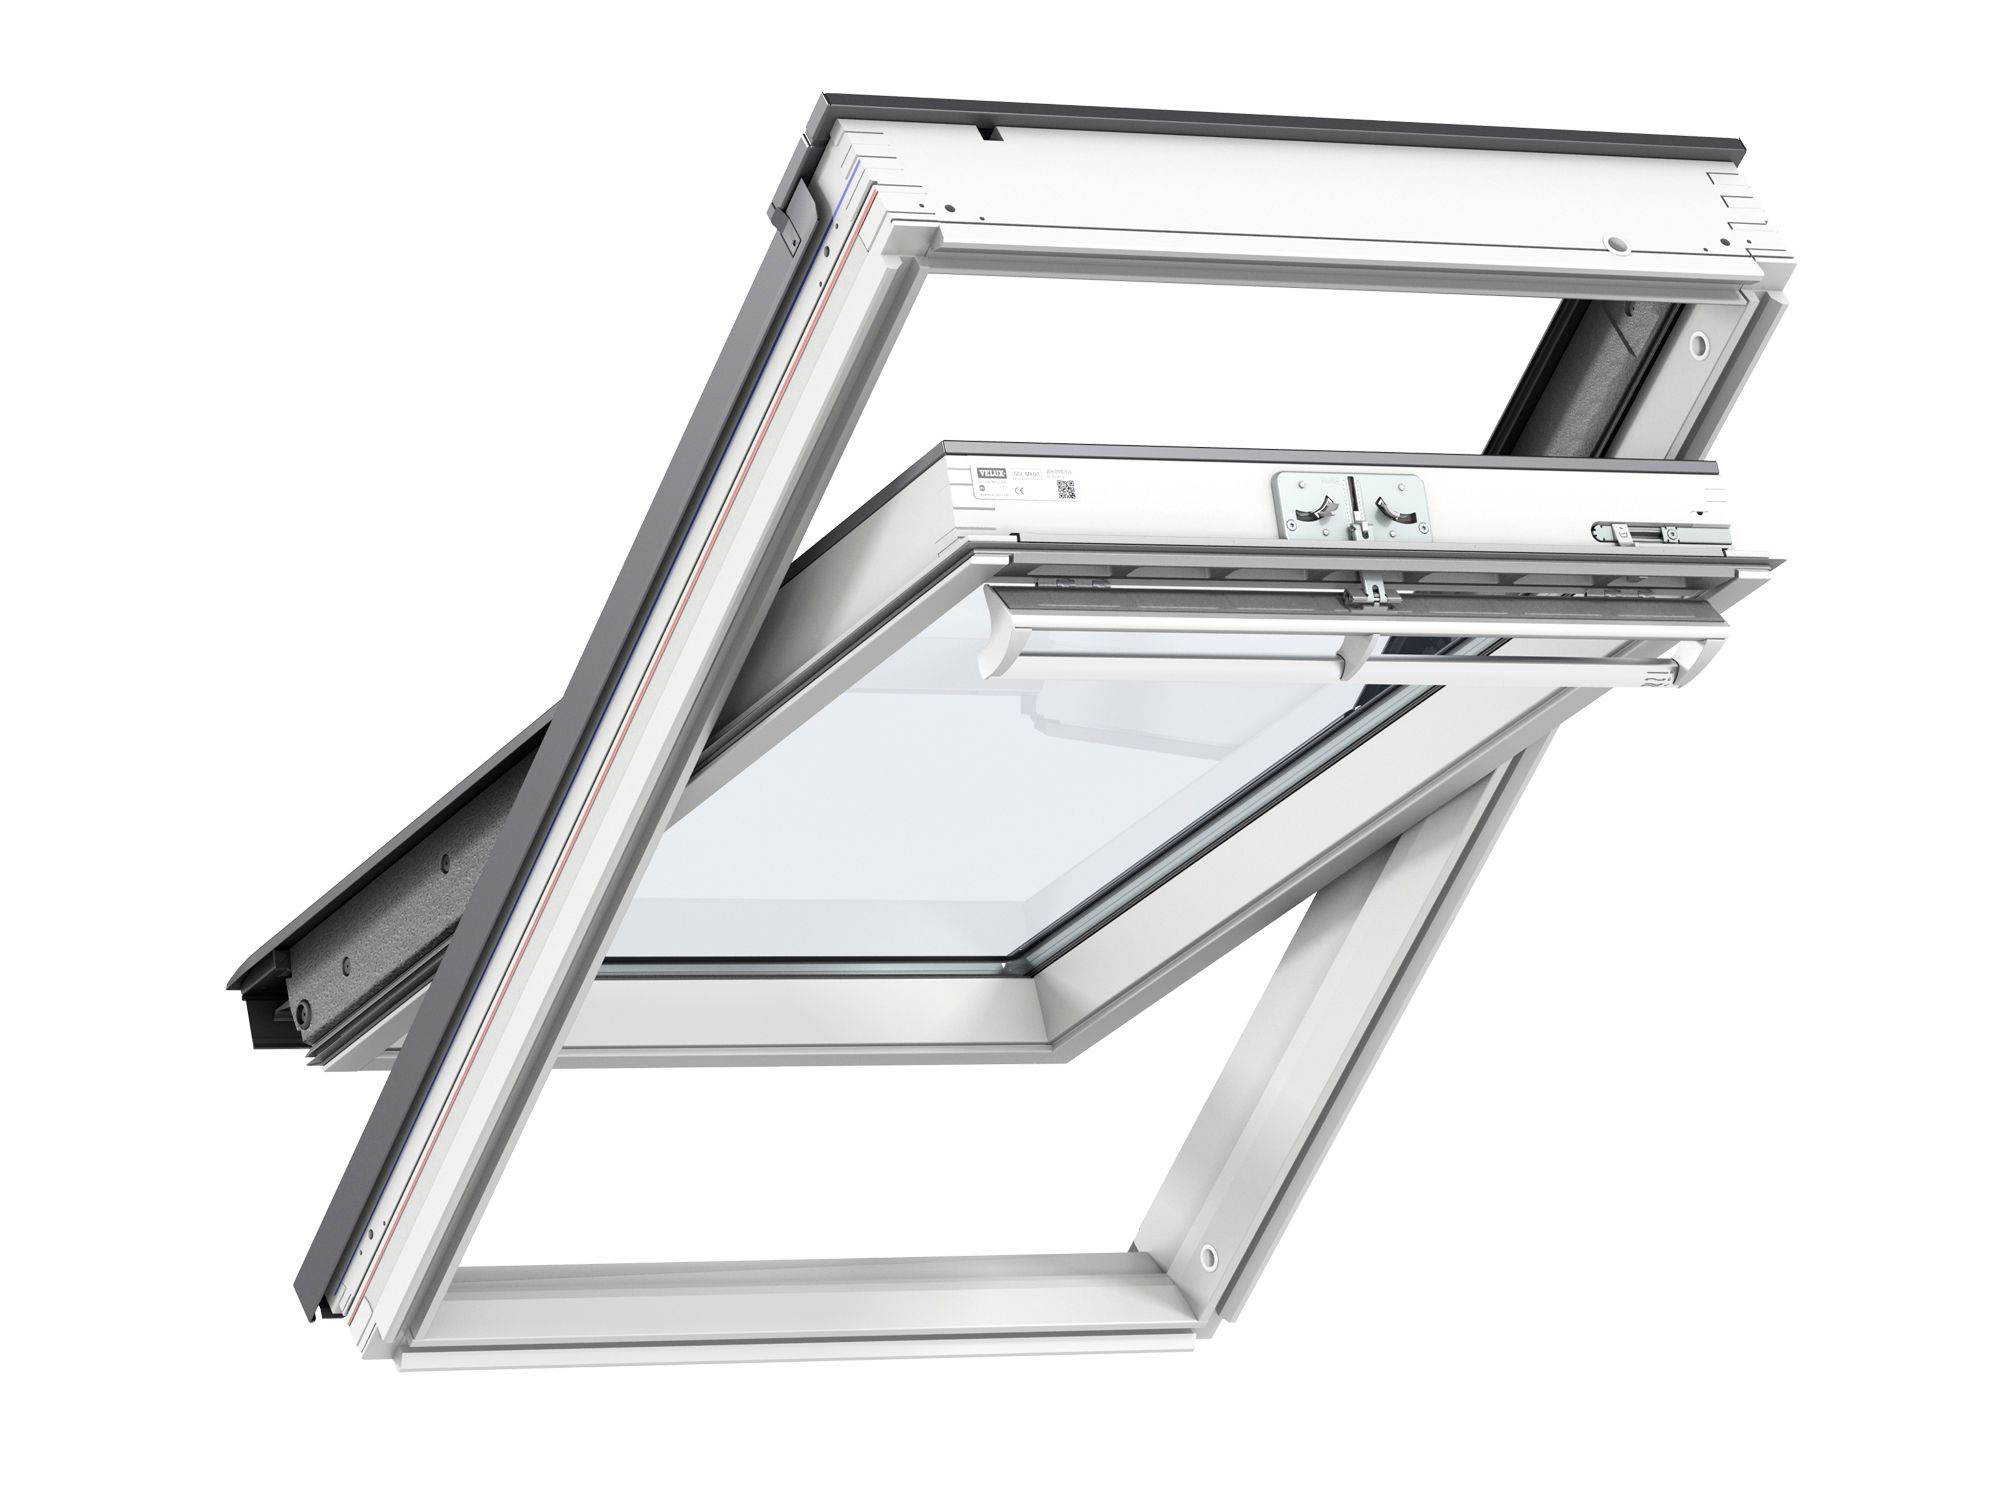 Ggl Mk04 Velux Centre Pivot Roof Window 780mm X 980mm White Painted Ggl